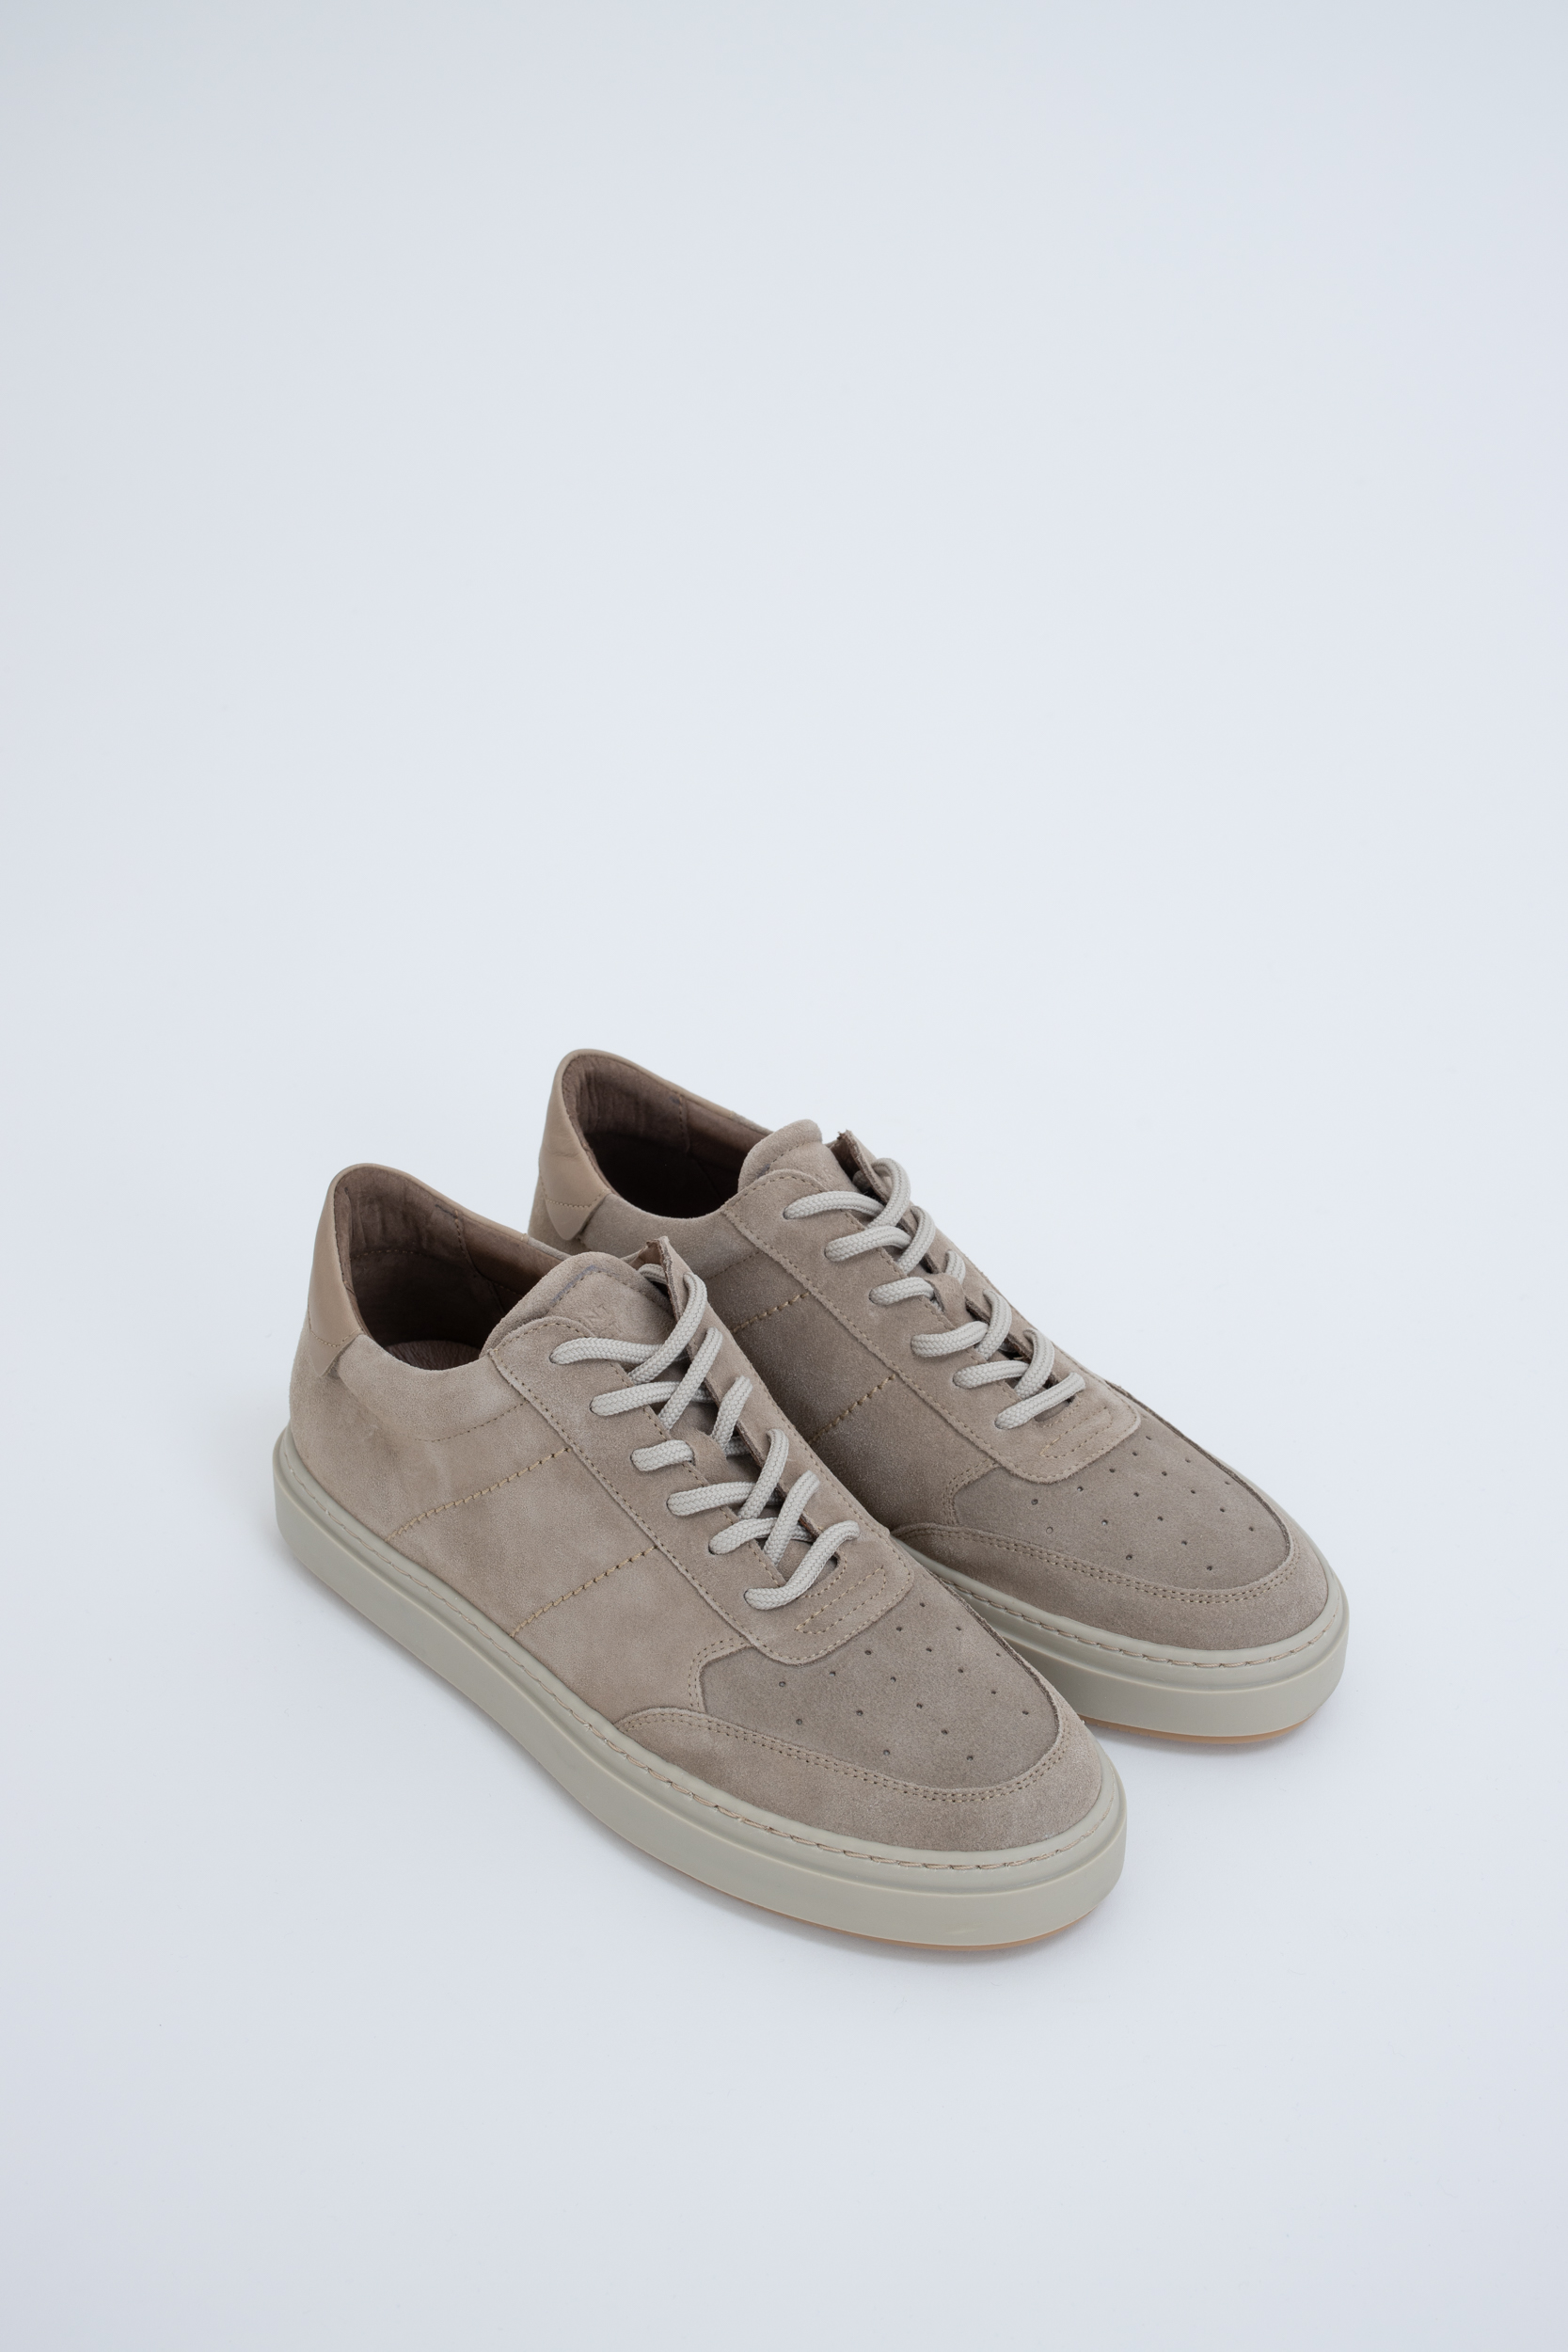 Sneaker Legend Earth Suede